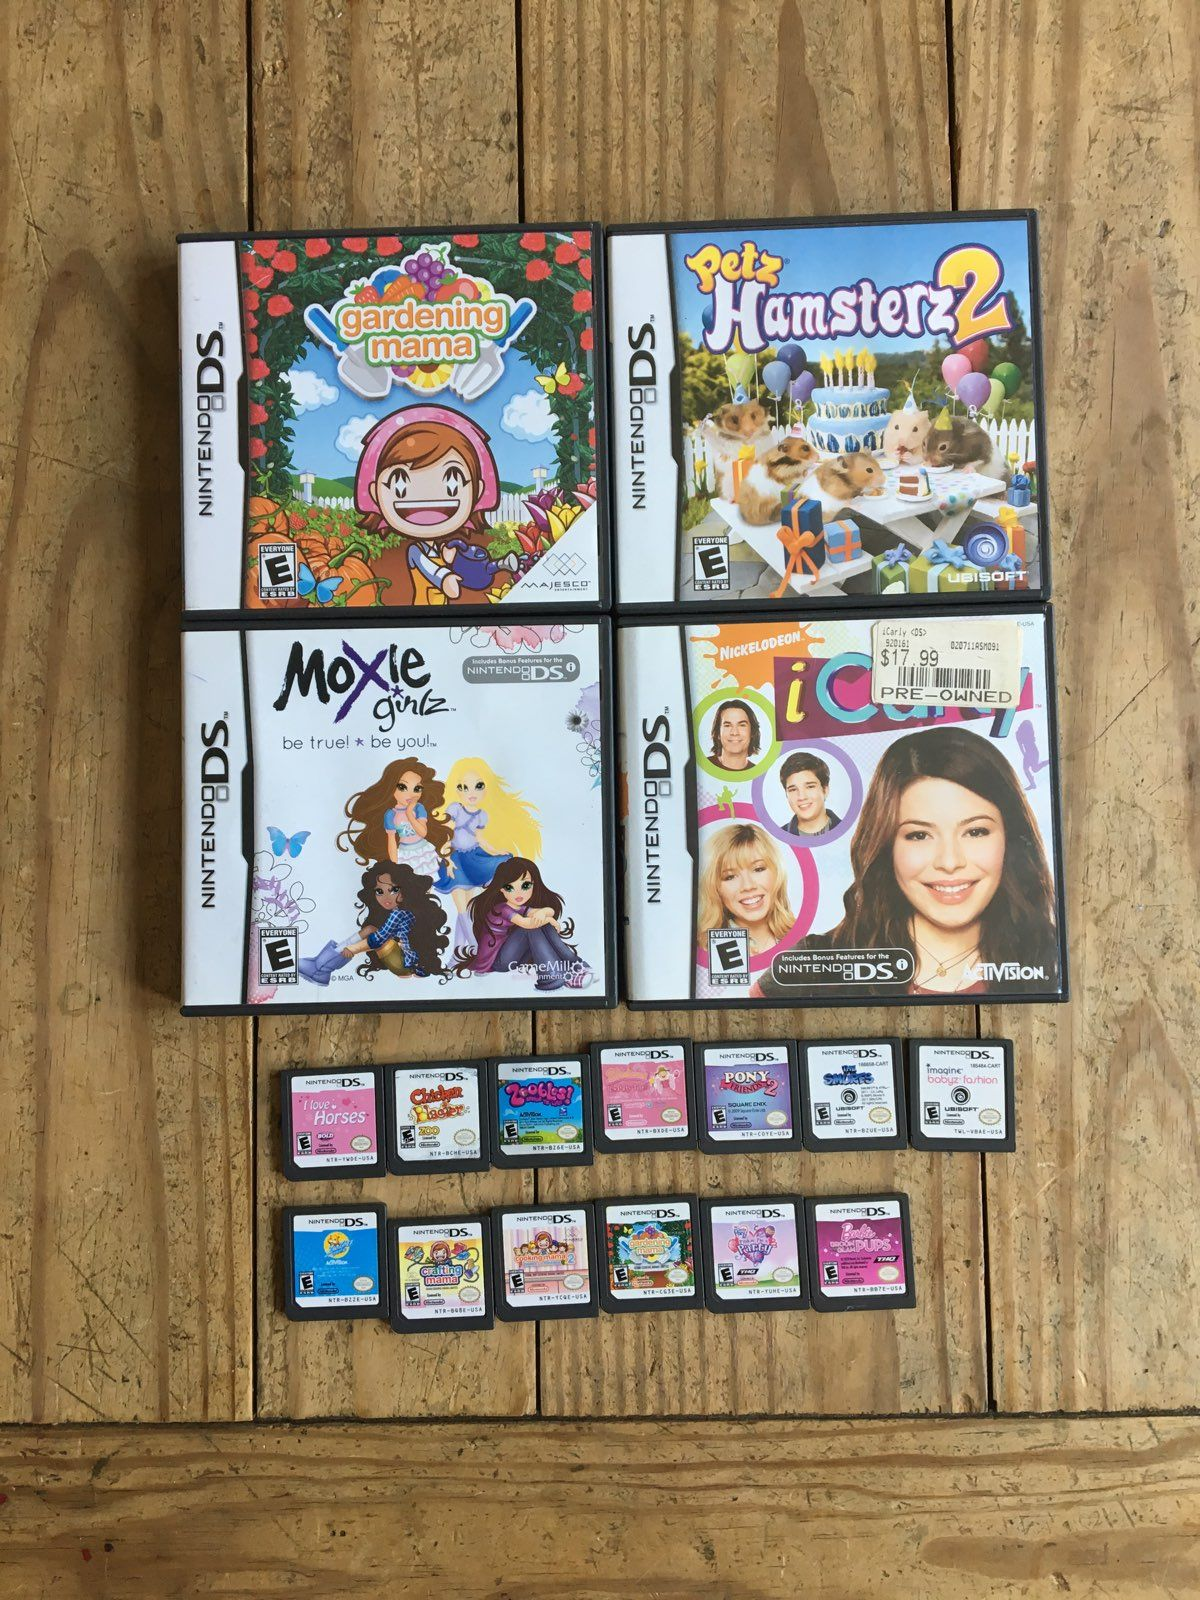 17 Games Great Condition Gardening Mama X2 Cooking Mama 2 Crafting Mama Petz Hamsters 2 Moxie Girlz Icarly I Love Horses Icarly Zhu Zhu Childhood Memories